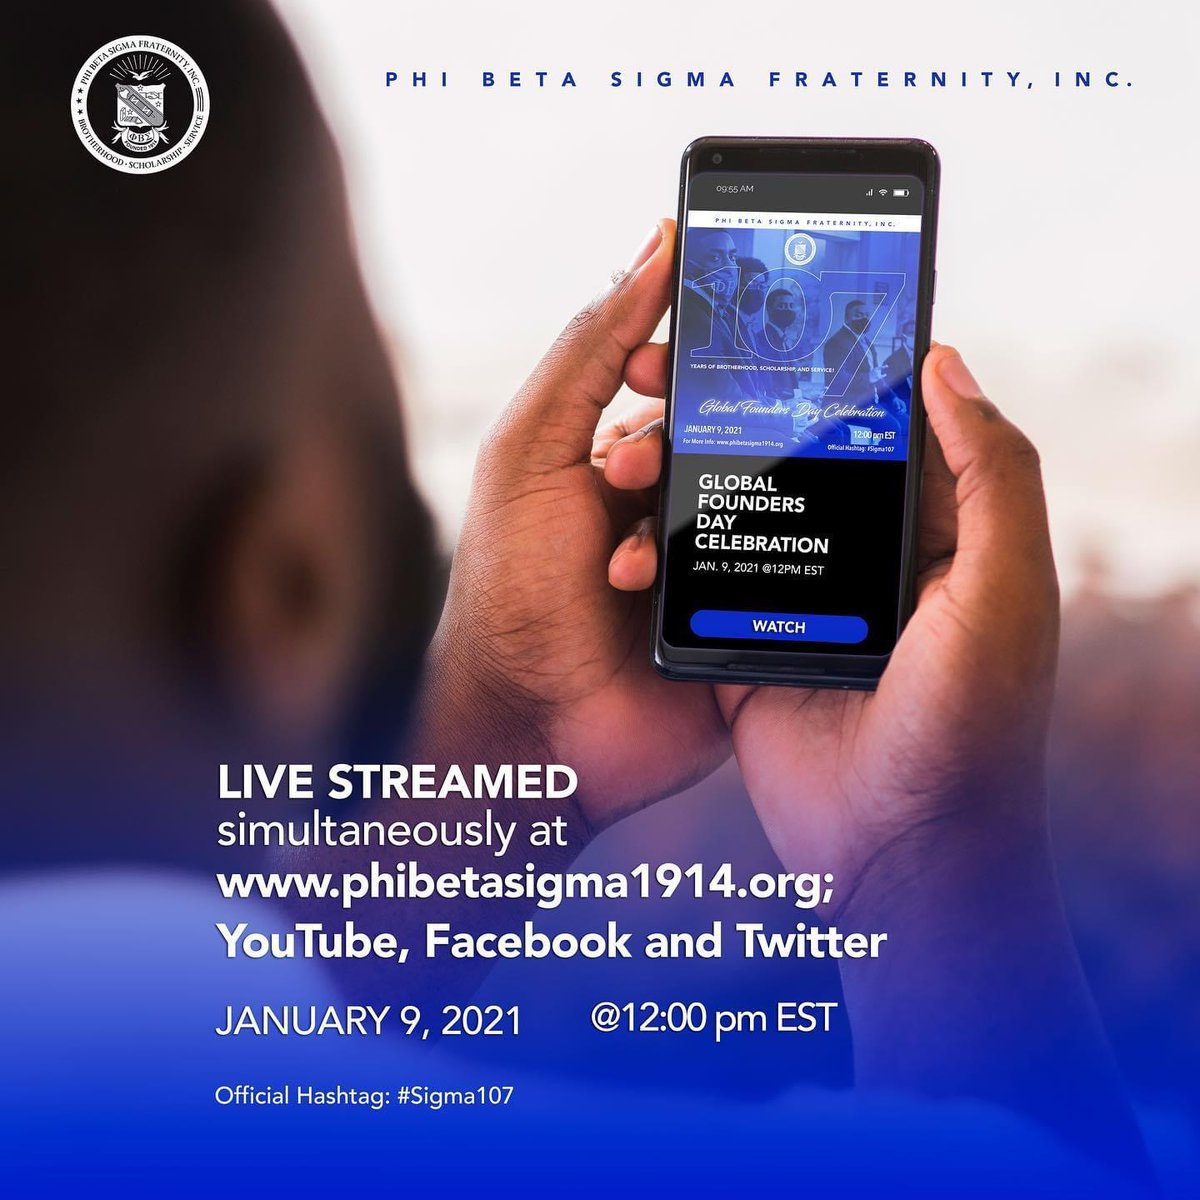 Livestream our 107th Virtual Global Founders' Day Celebration on Jan 9, 2021 at 12 PM EST on YouTube, Facebook and Twitter!  Click one of the links below to watch the event live. YouTube:  Facebook:  Twitter: